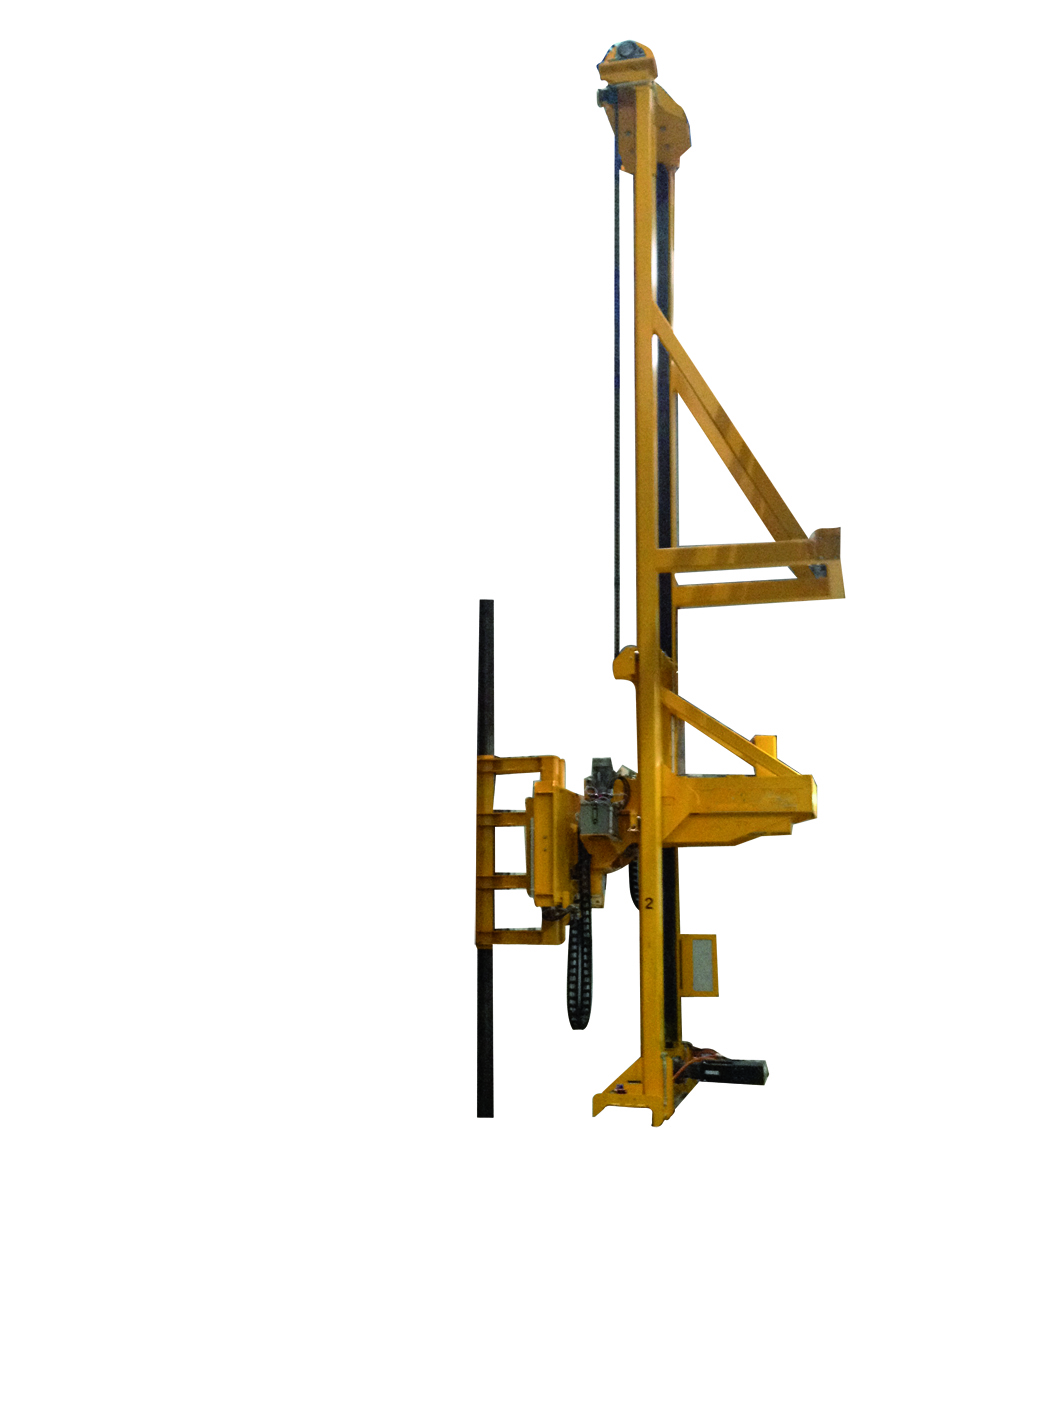 Drive and lifting system - intralogistics